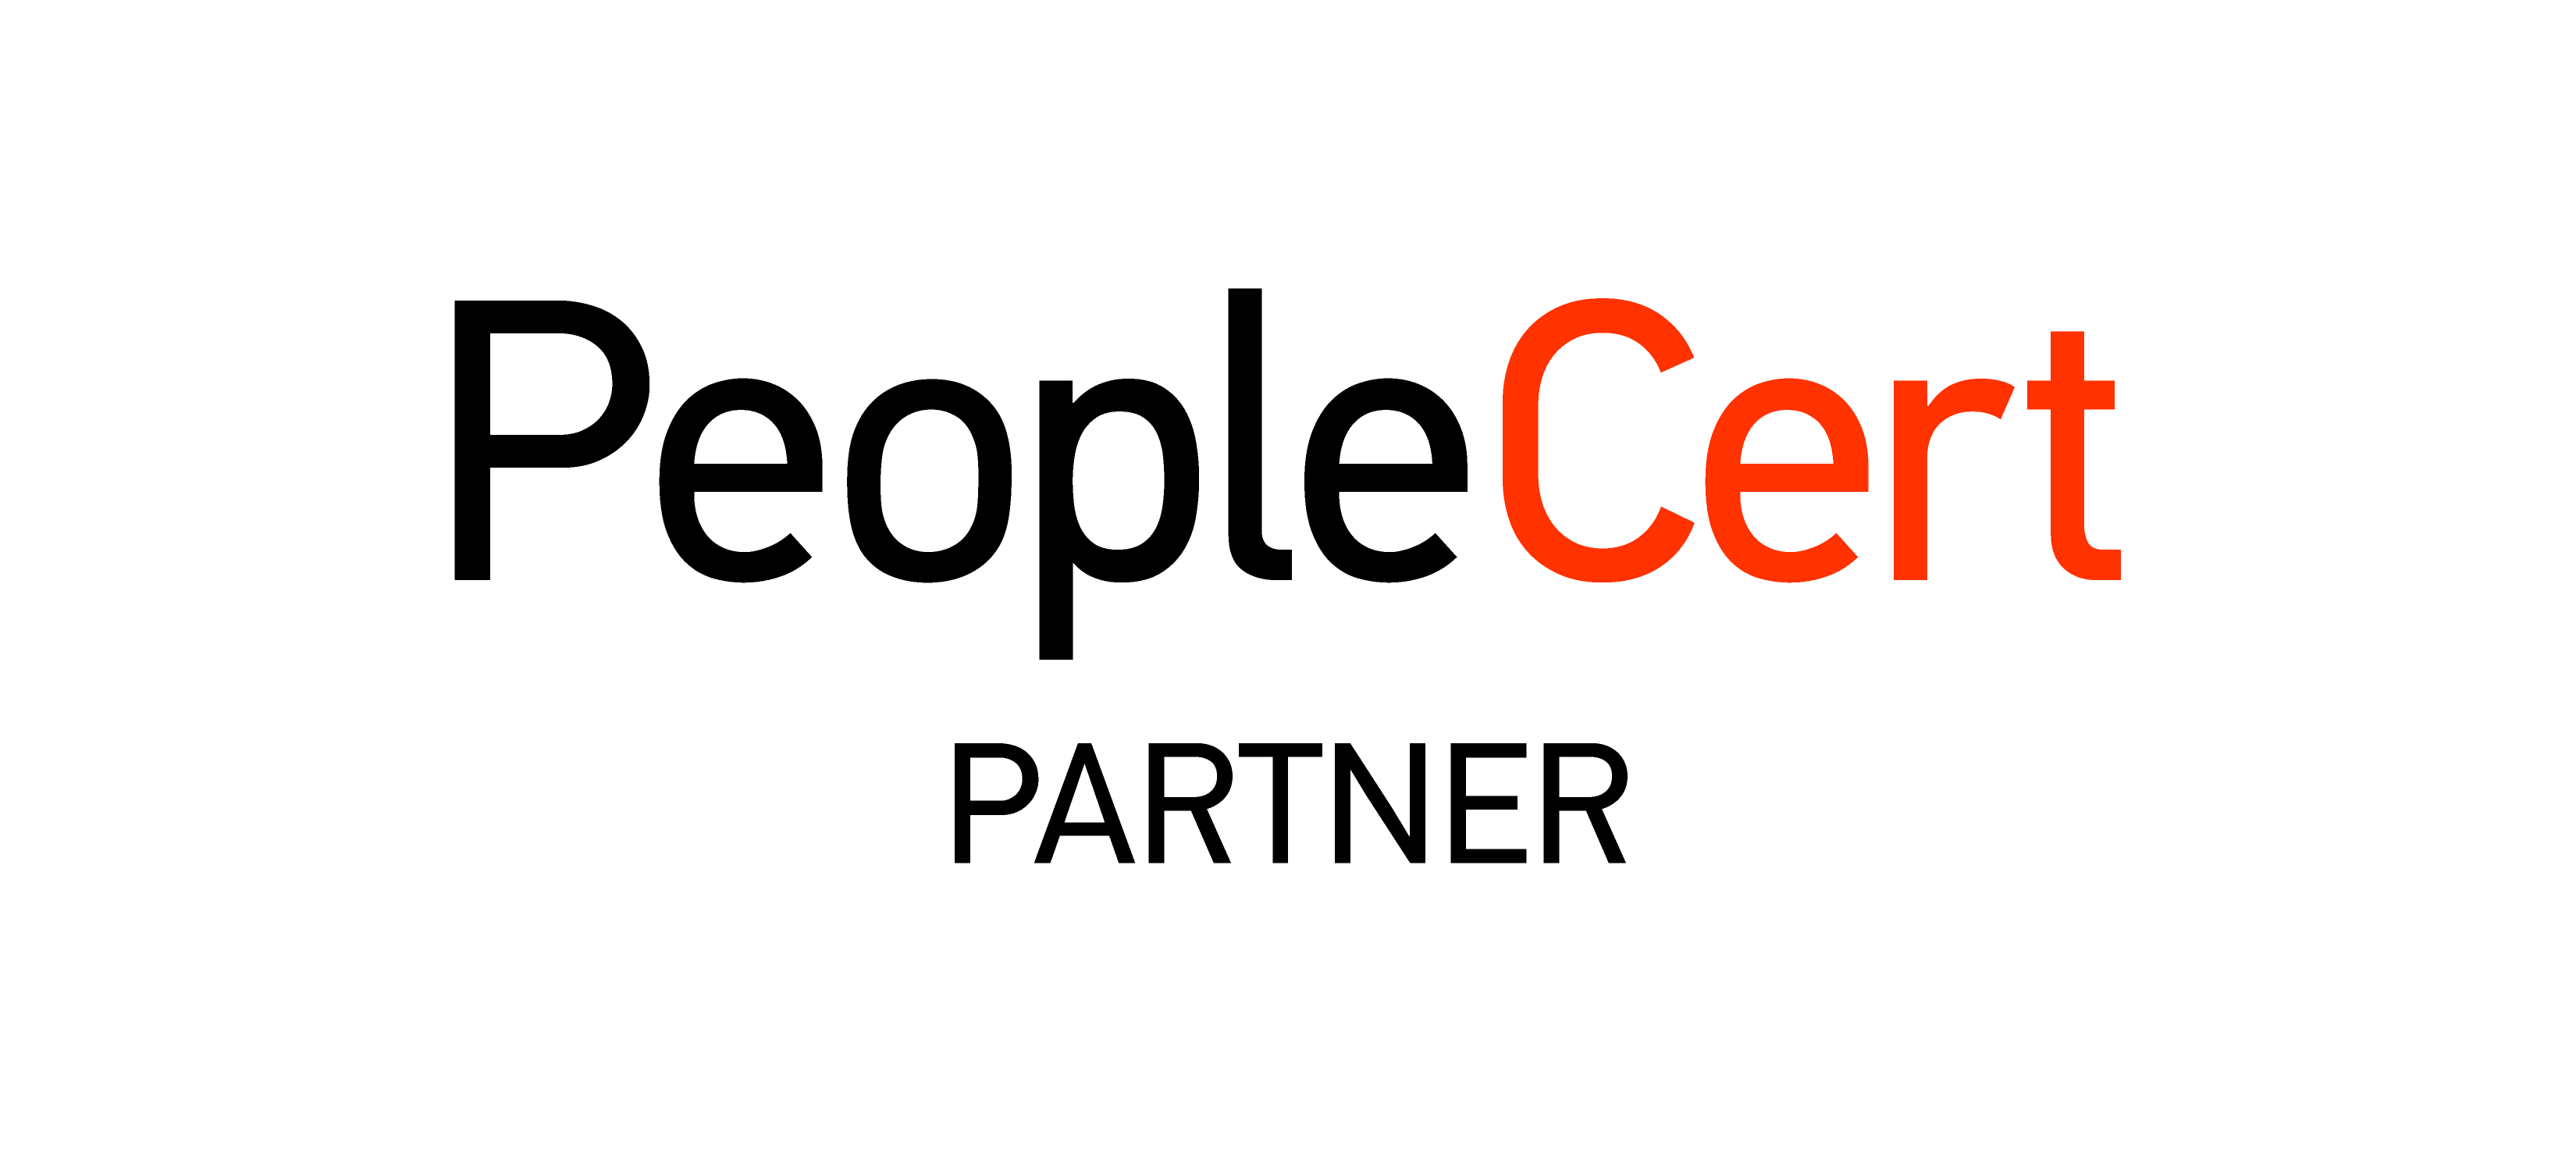 peoplecert_partner_logo